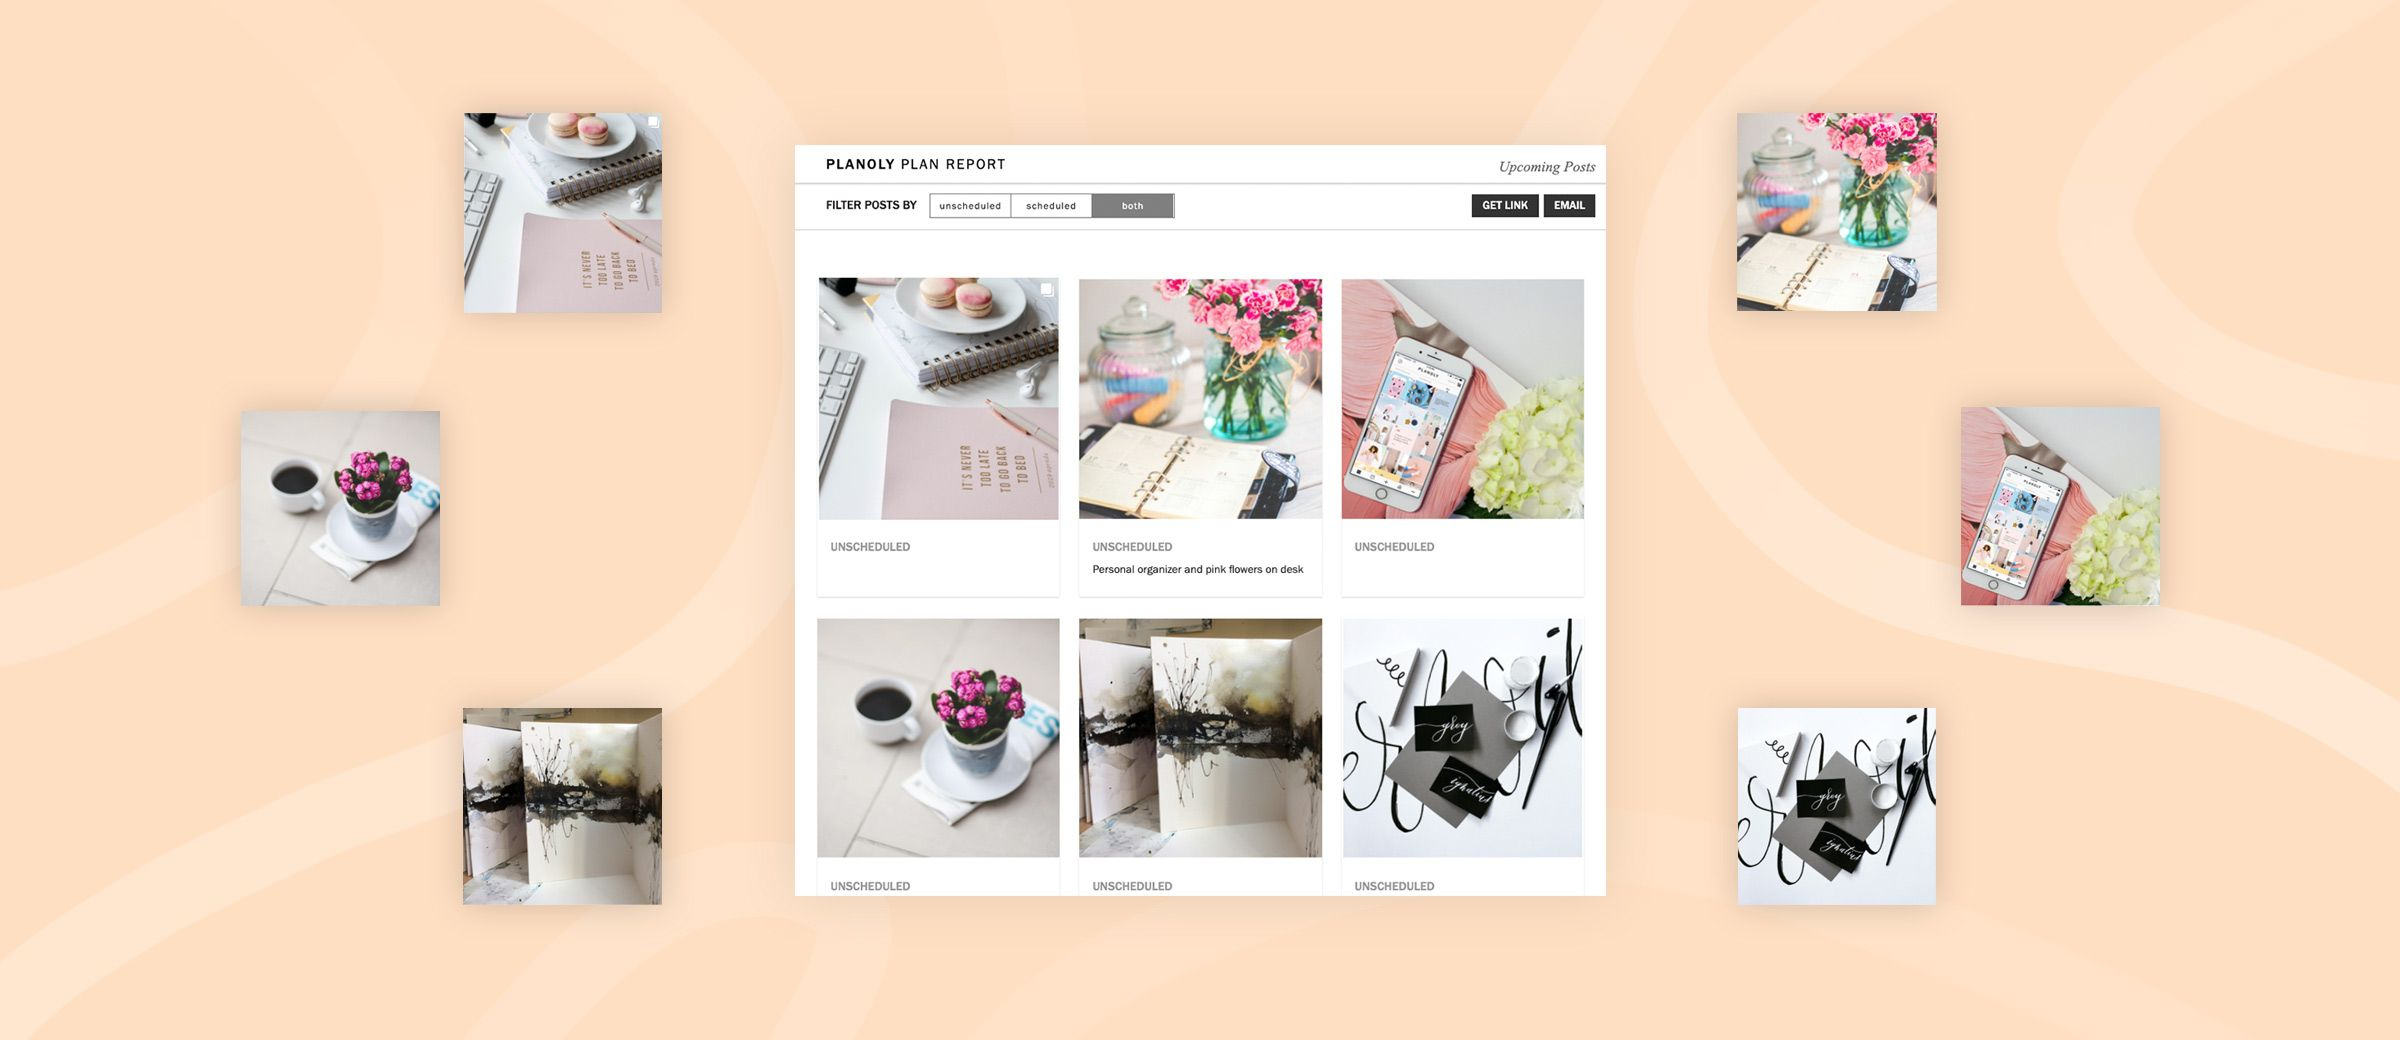 Using PLANOLY's Plan Report Tool for Instagram Content Approvals